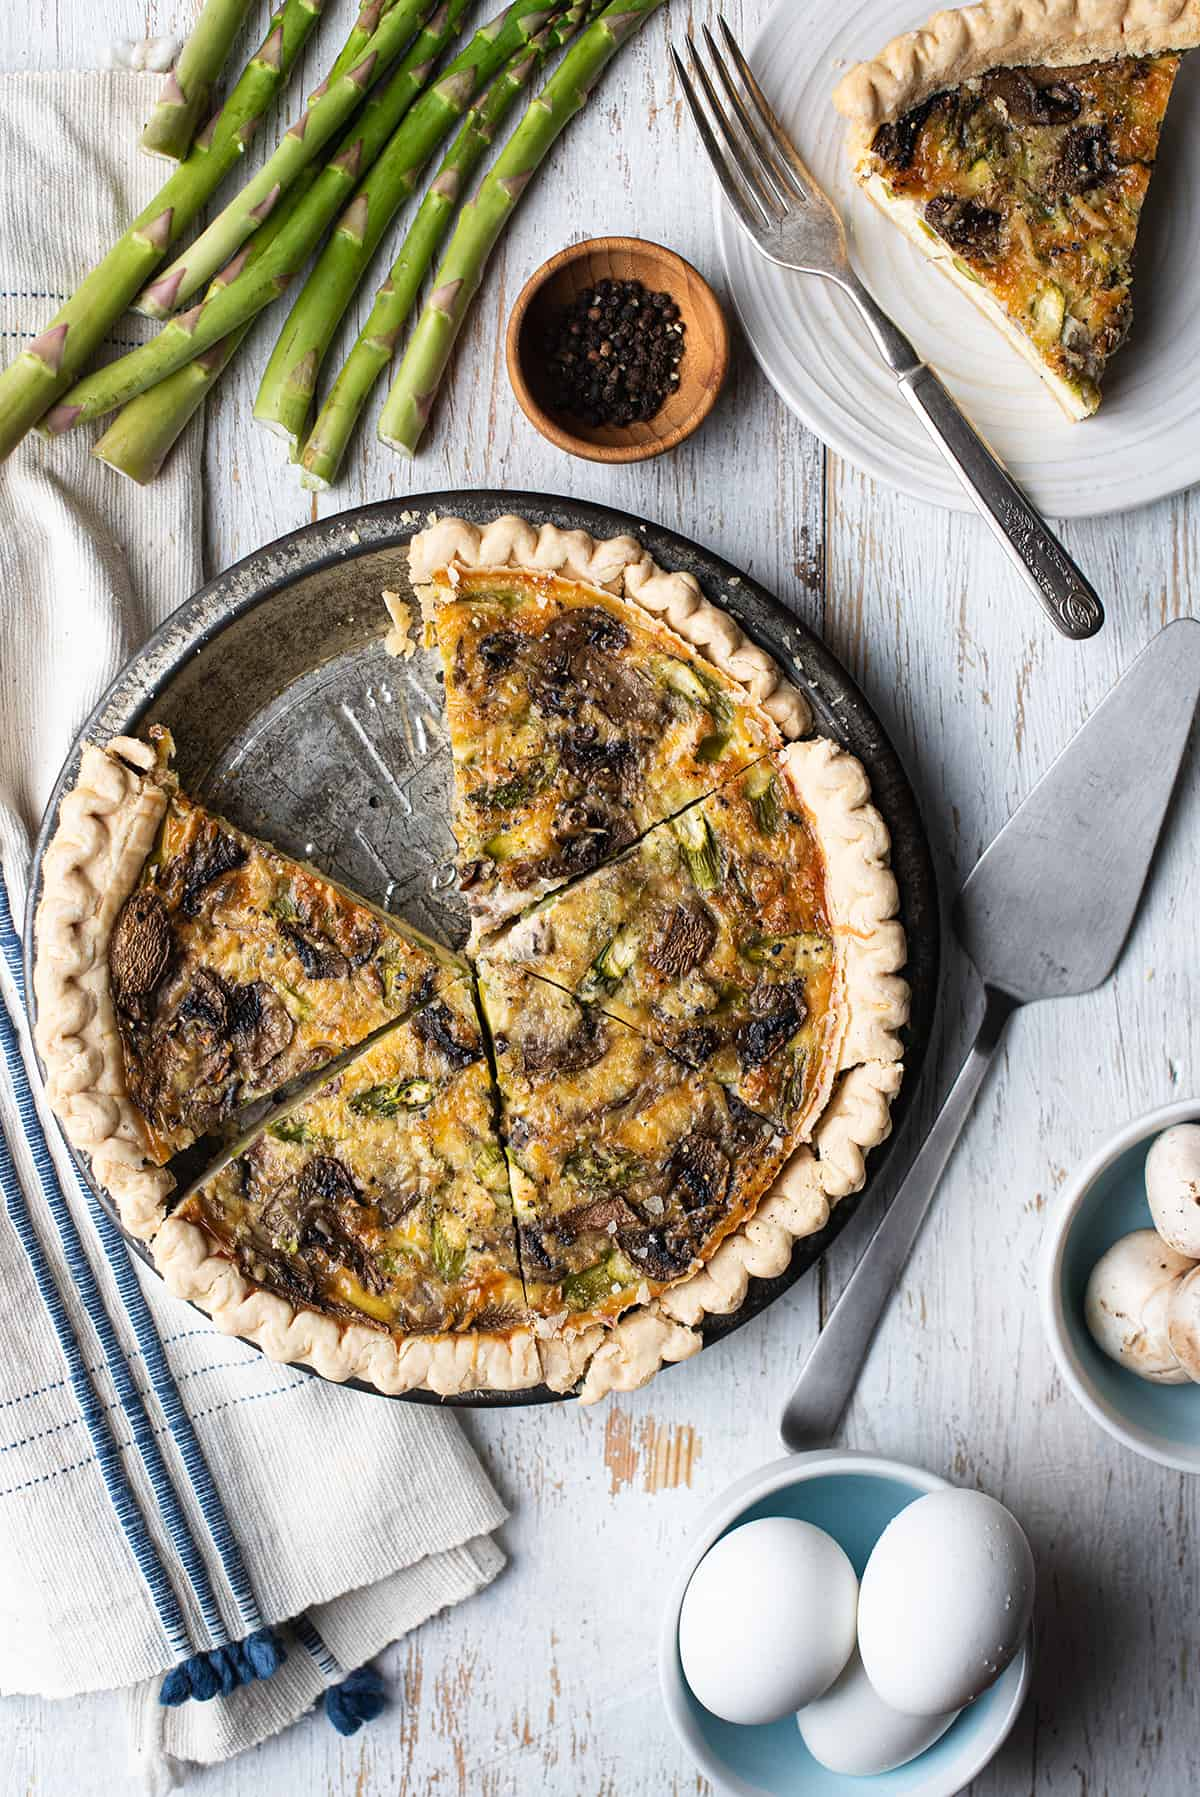 asparagus & mushroom quiche sliced in pan on white wood